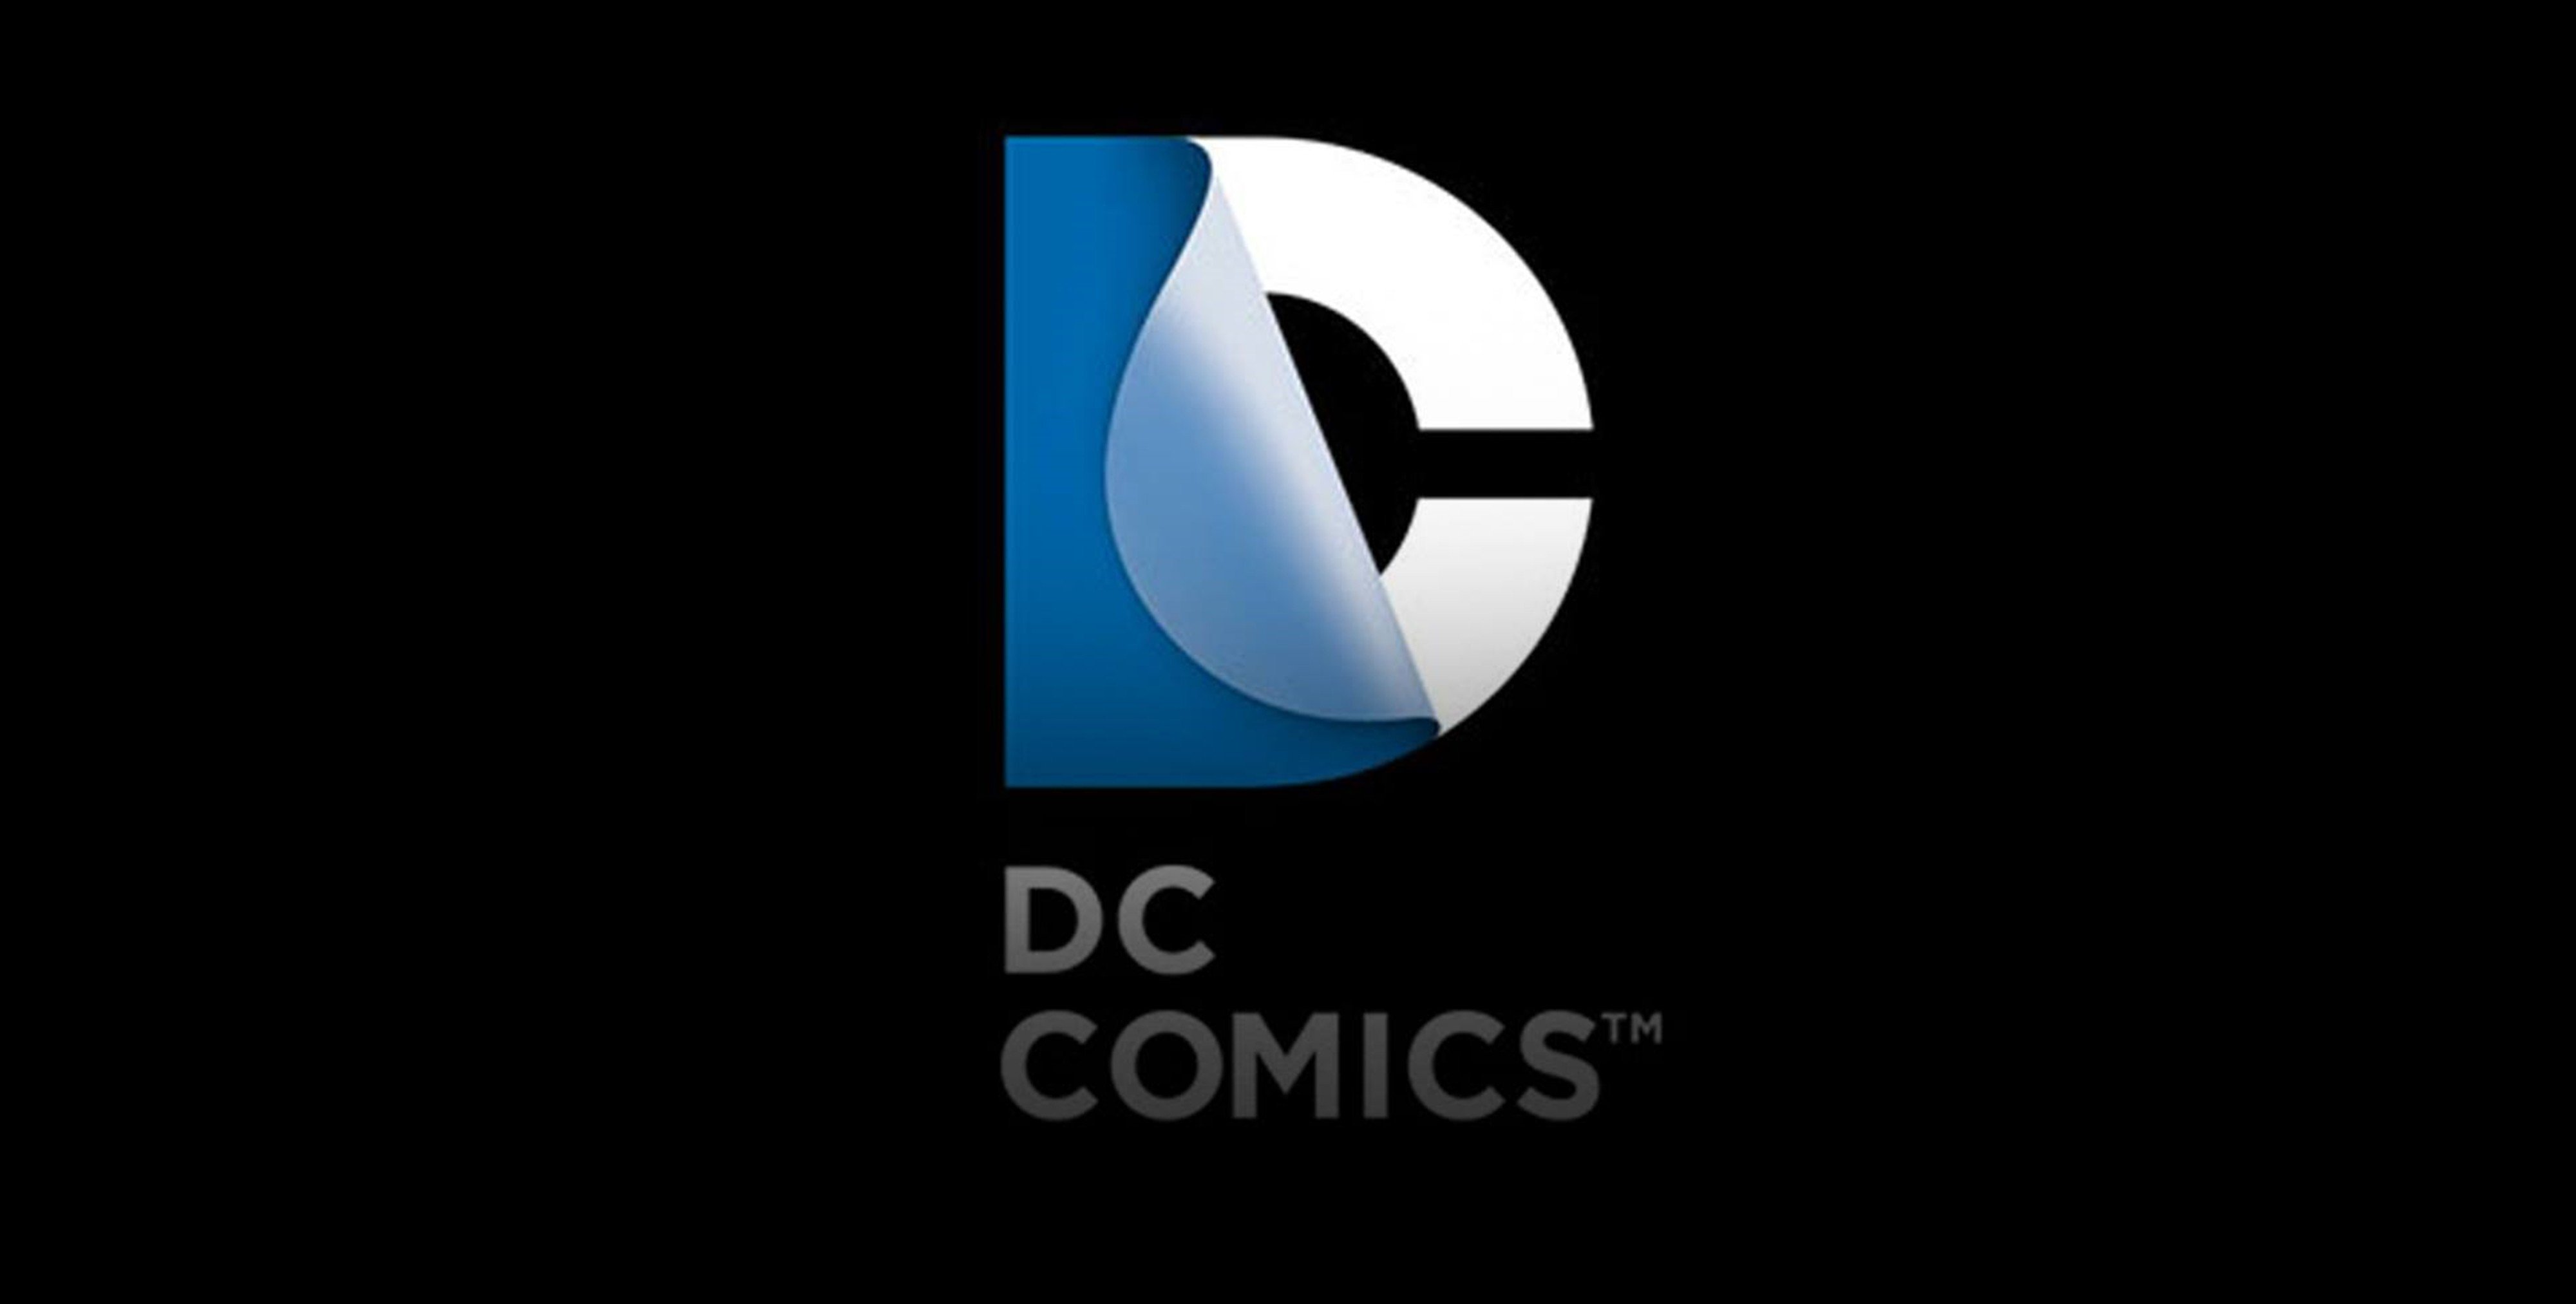 Dc comics logo superheroes comics wallpaper 4000x2025 345395 4000x2025